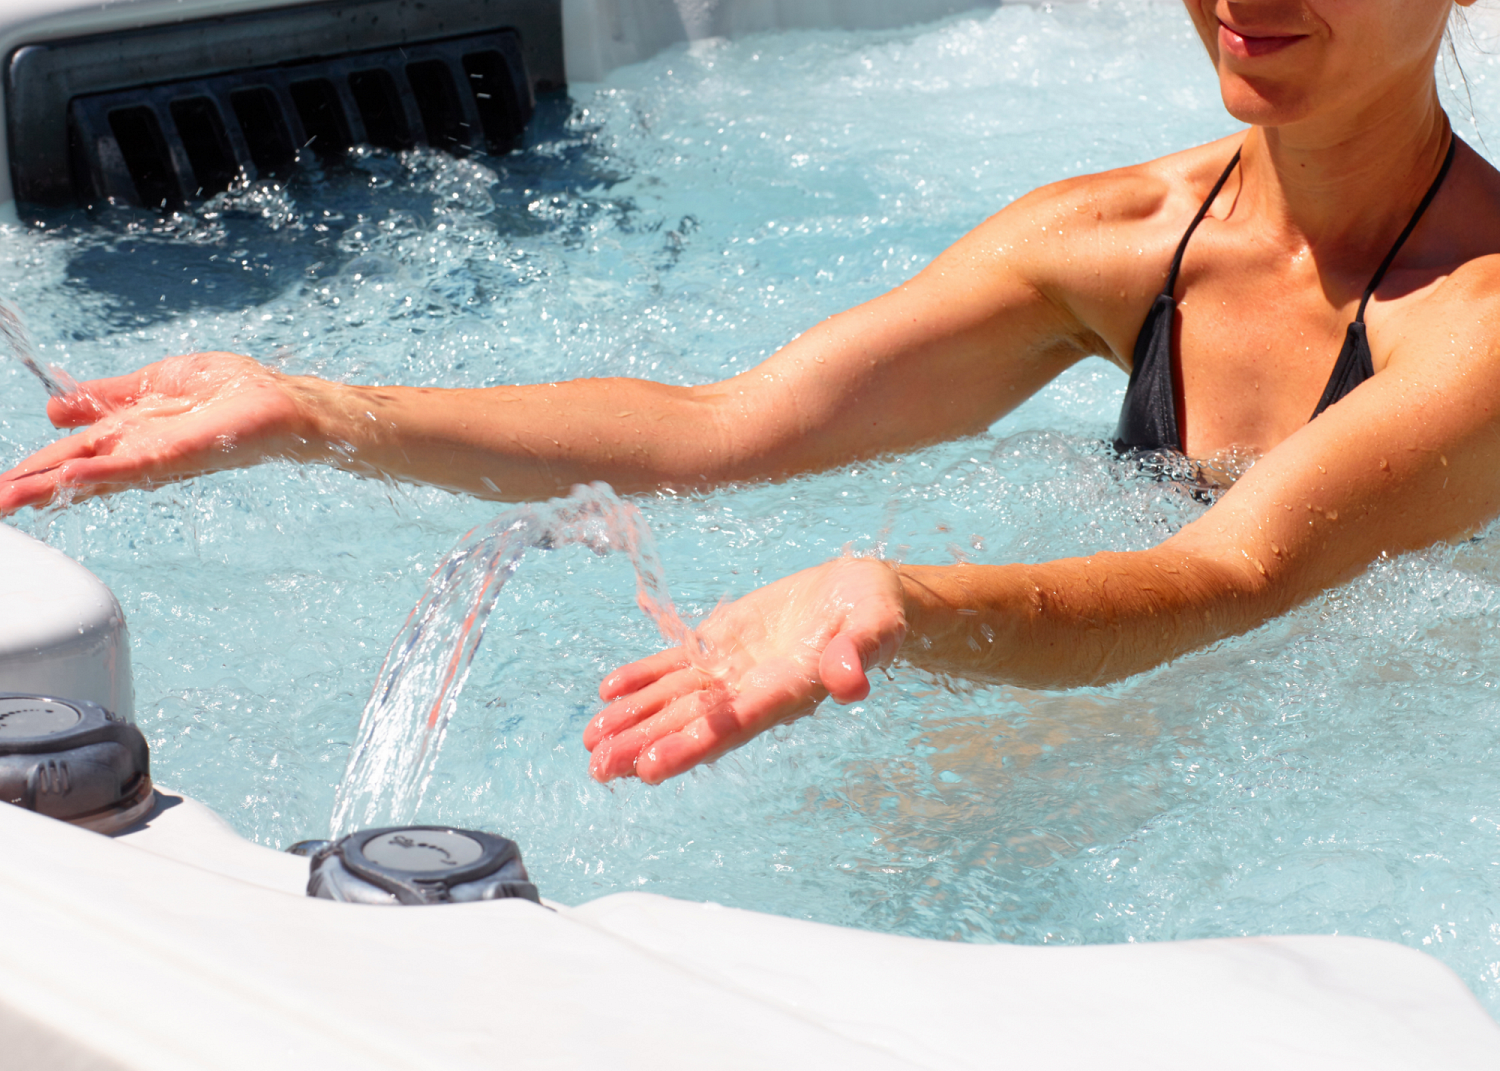 woman Playing in hot tub